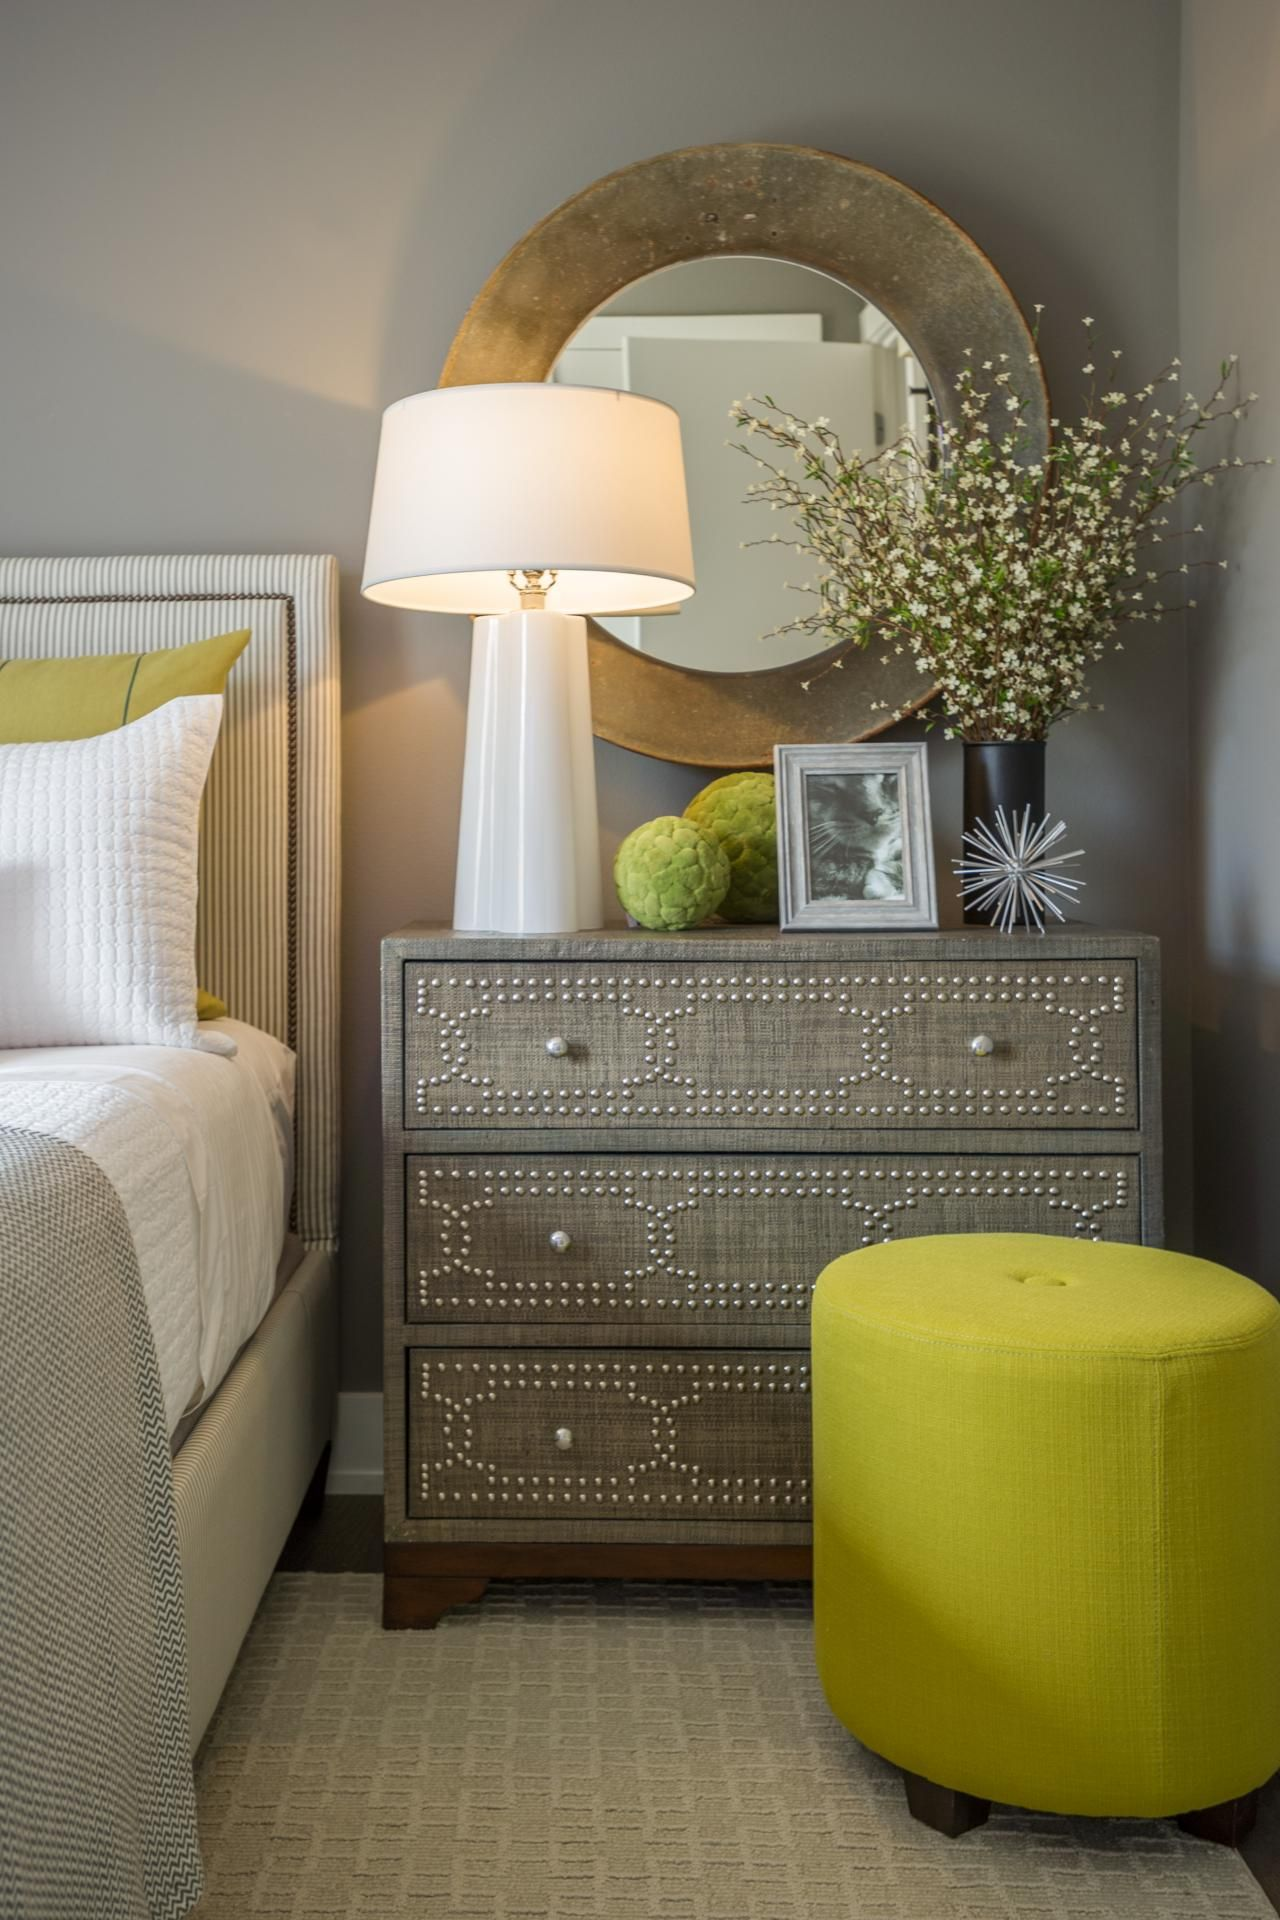 Guest Bedroom Pictures From HGTV Smart Home 2015 | Spring ...